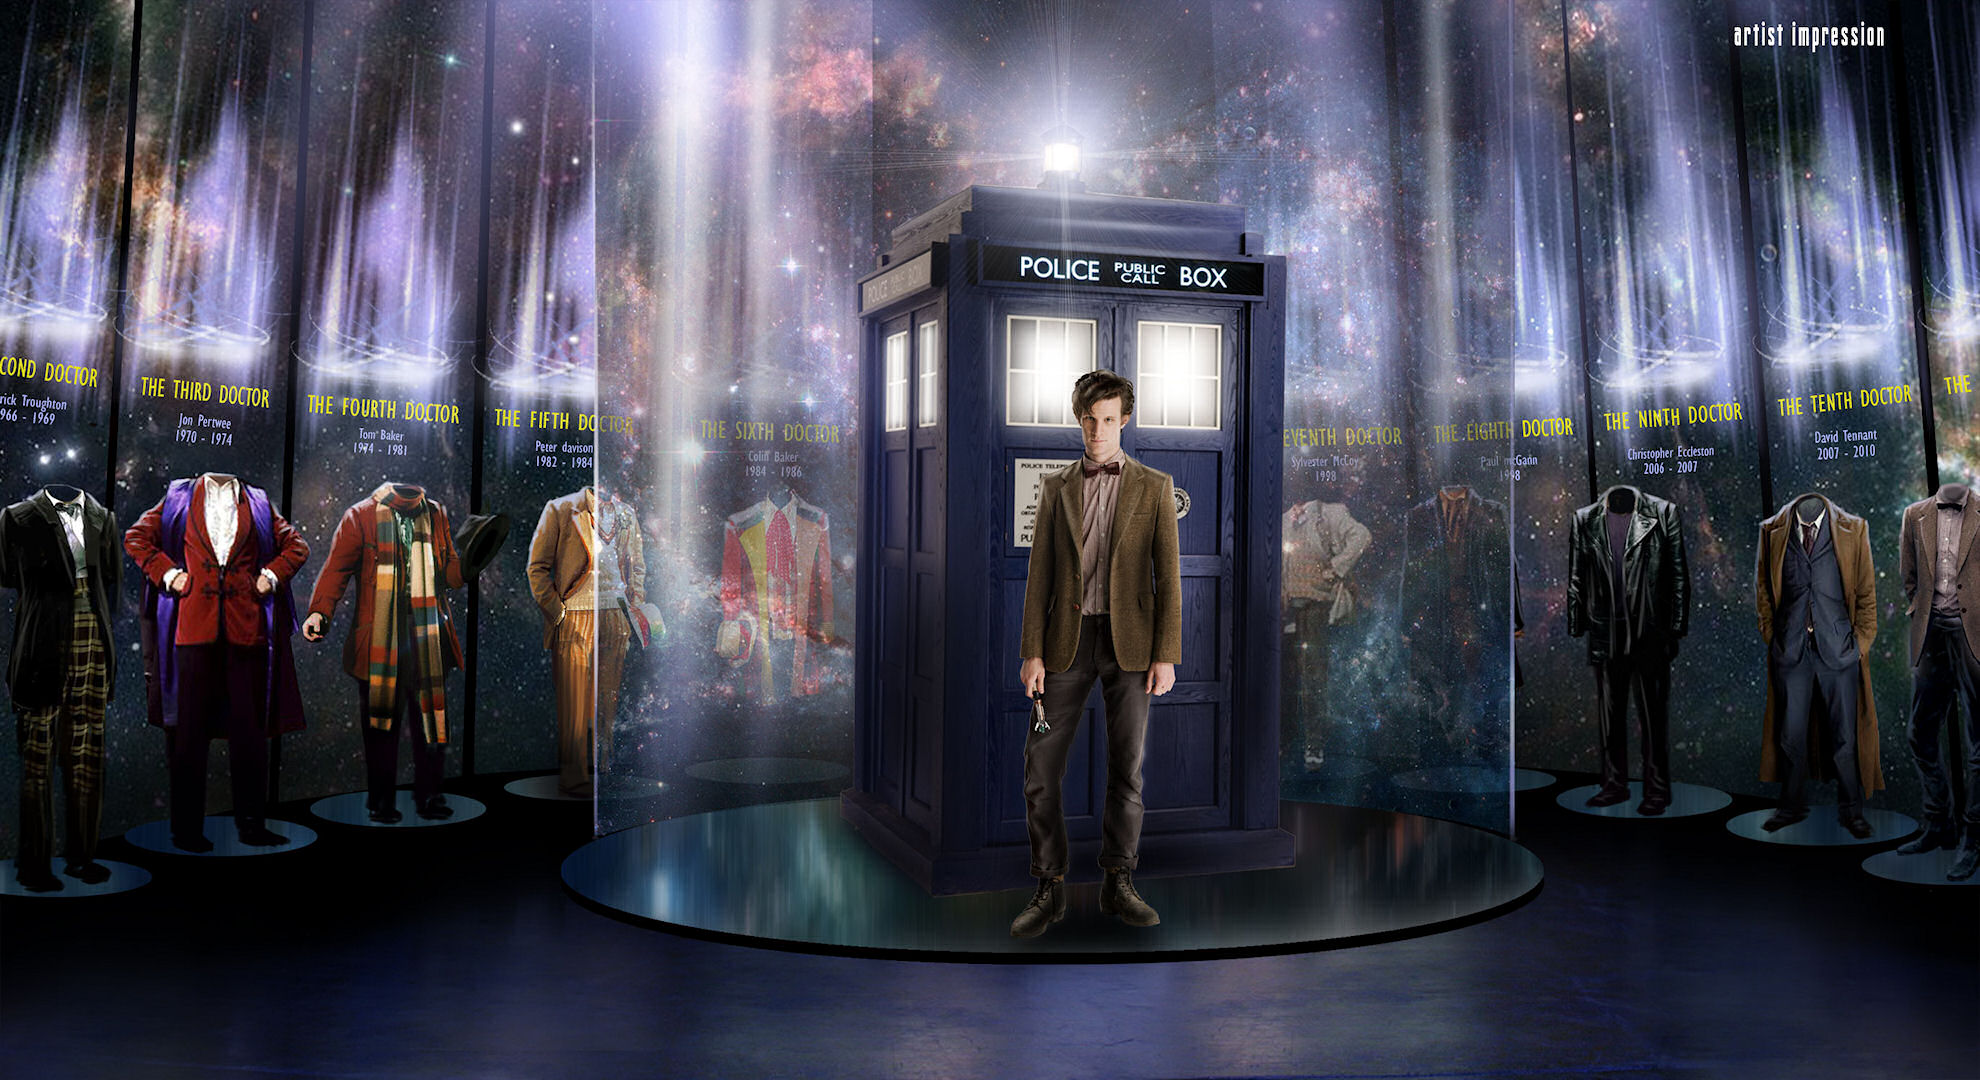 6990018-download-doctor-who-wallpaper-11th.jpg